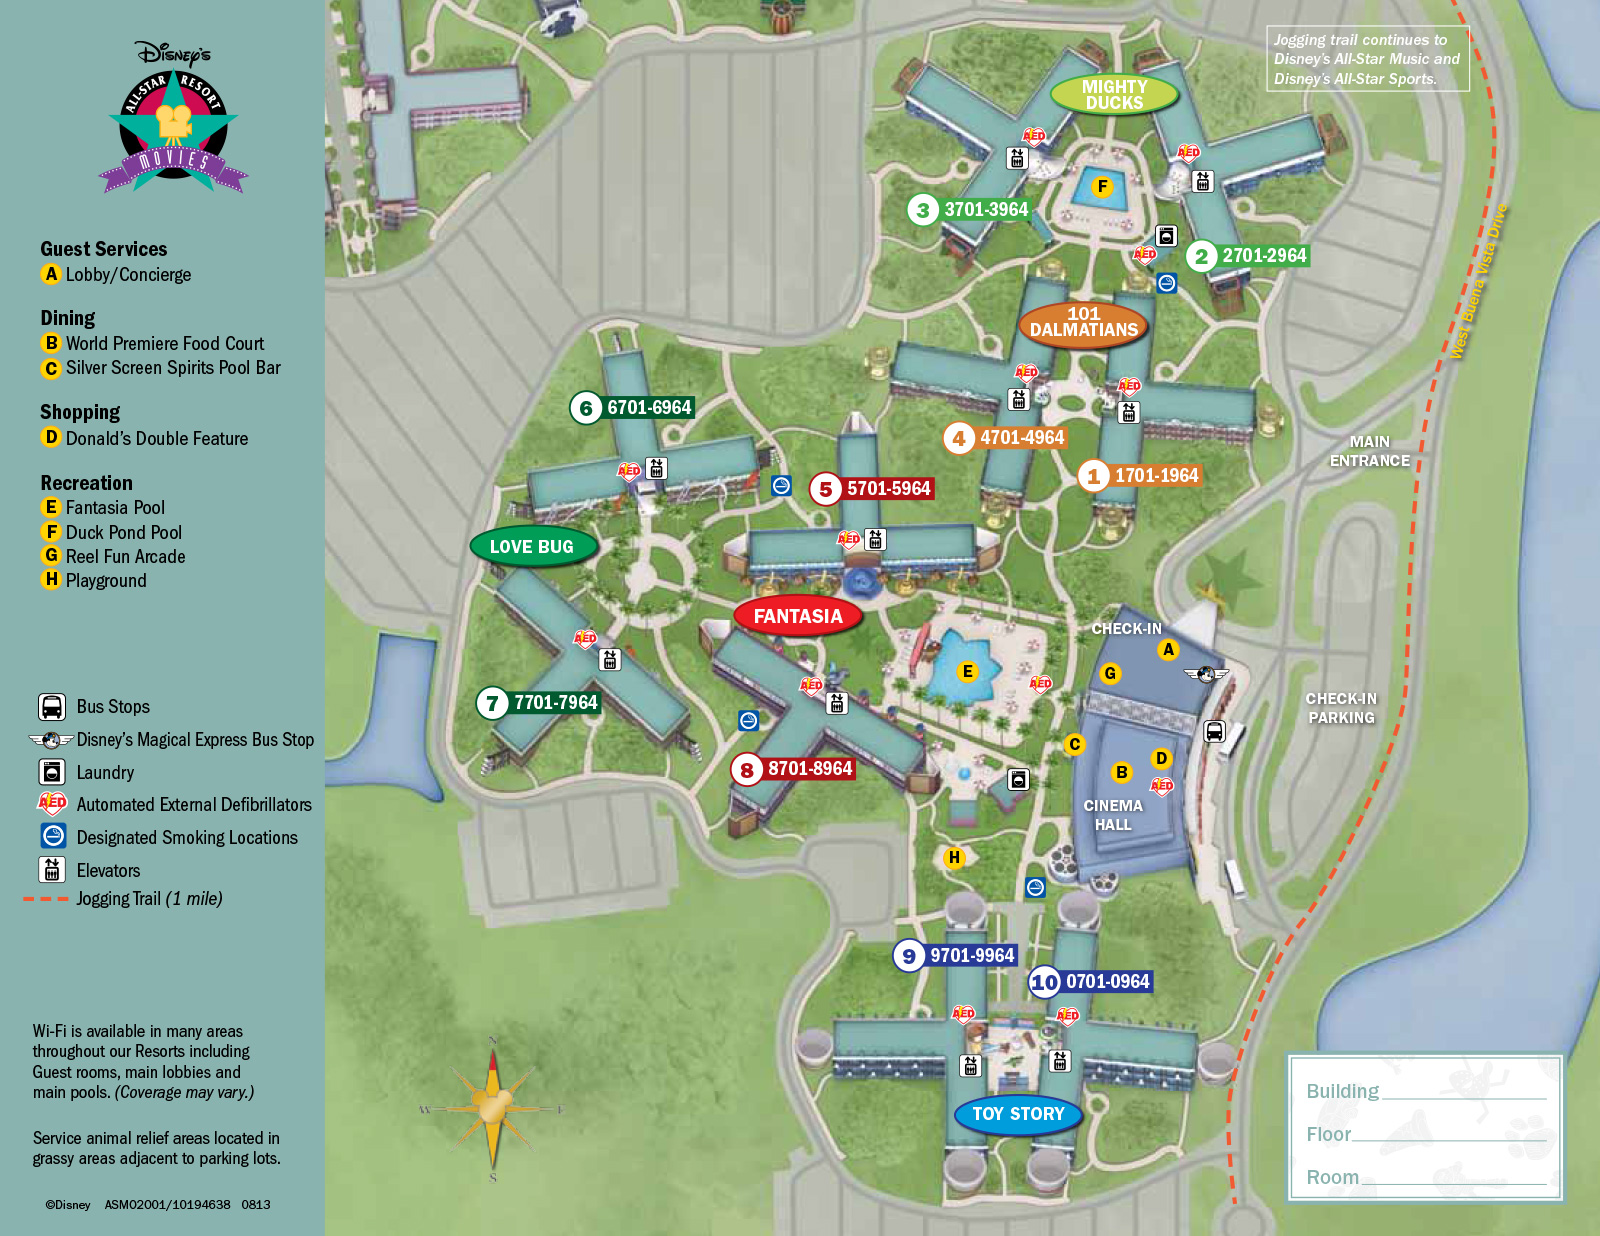 New look 2013 Resort Hotel maps 1 of 37